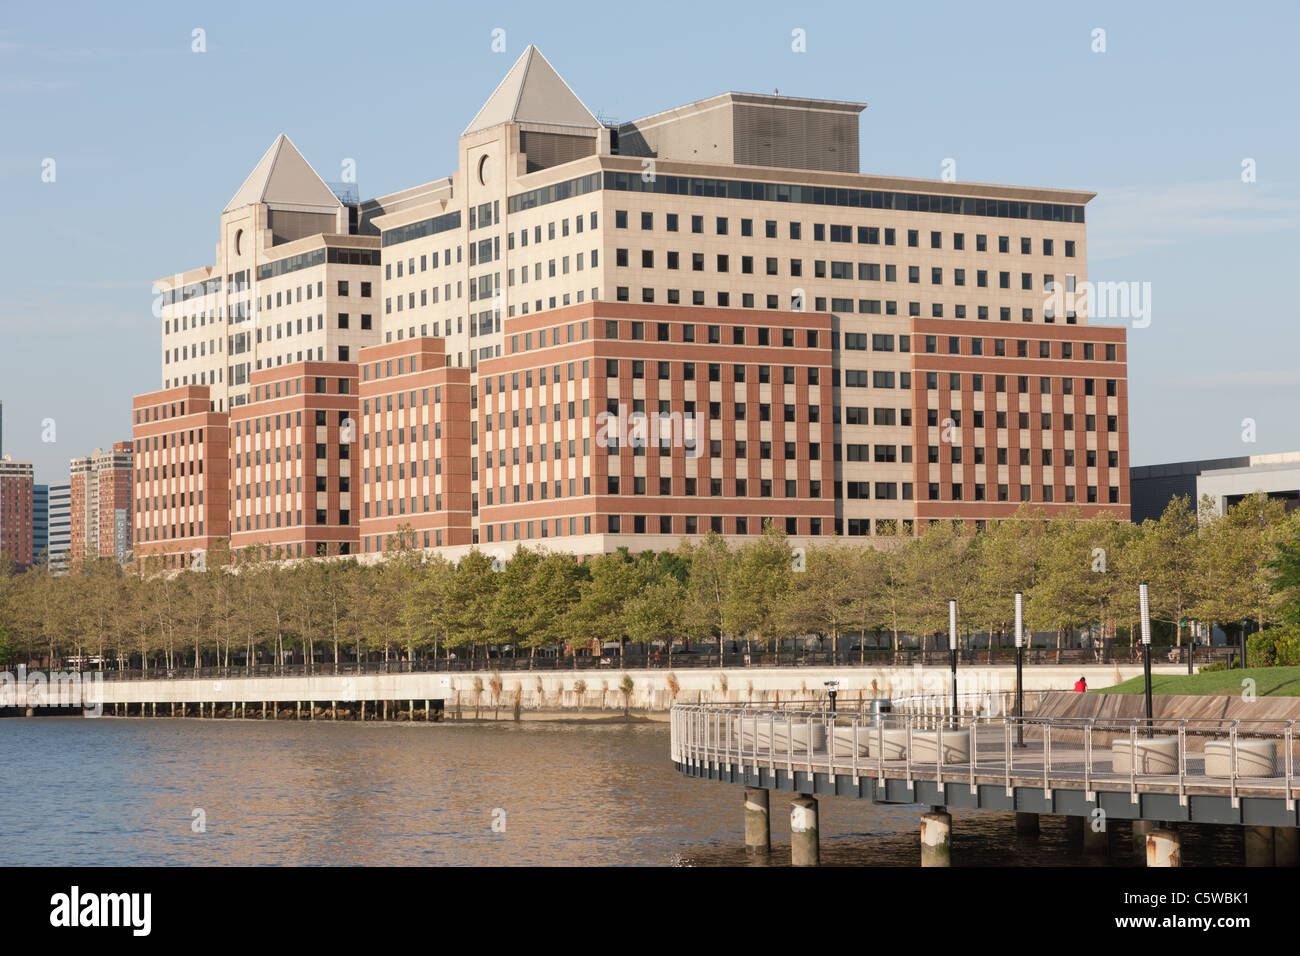 Waterfront redevelopment including the Hoboken Waterfront Corporate Center I and II in Hoboken, New Jersey. - Stock Image